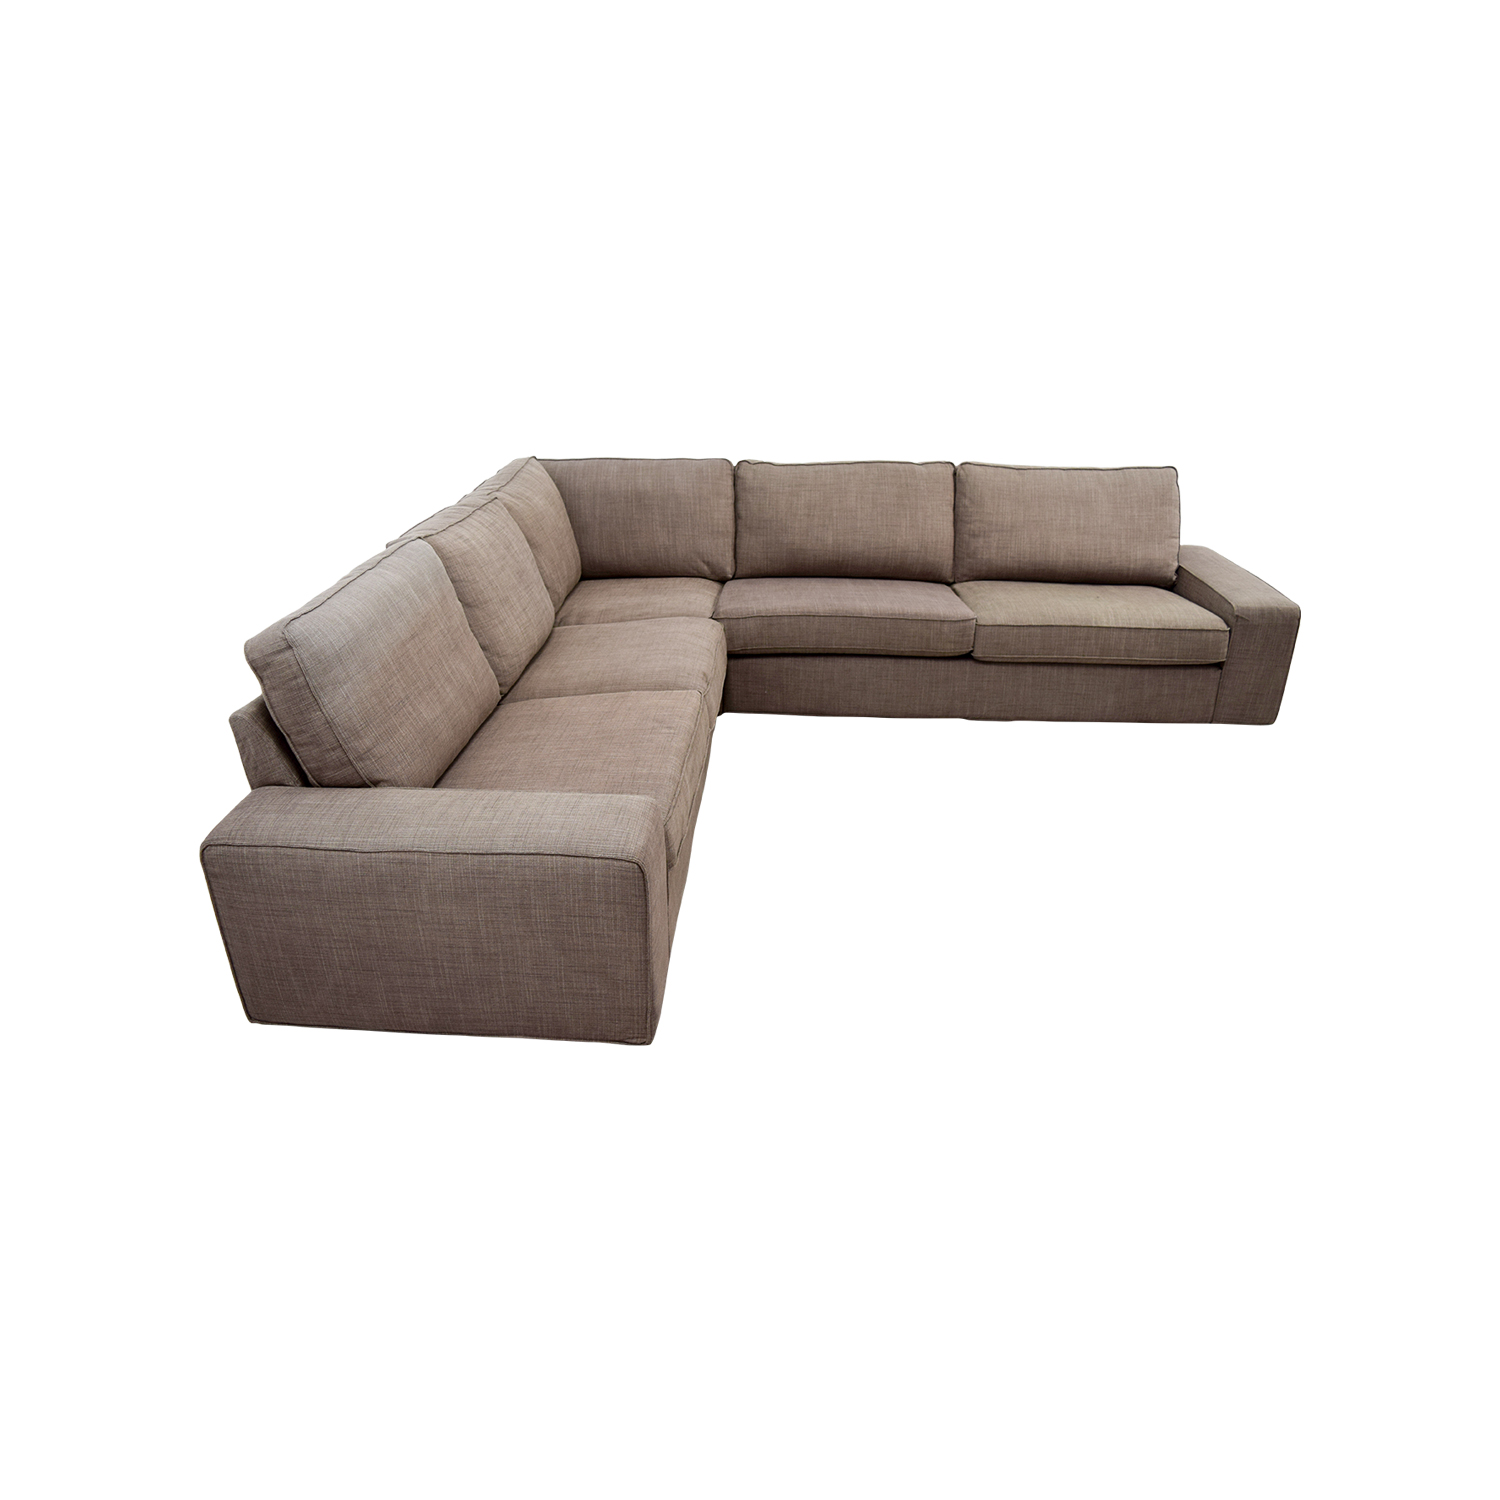 Ikea Sofa Ekeskog Ikea Big Sofa Ikea Stockholm Sofa And Large Armchair For